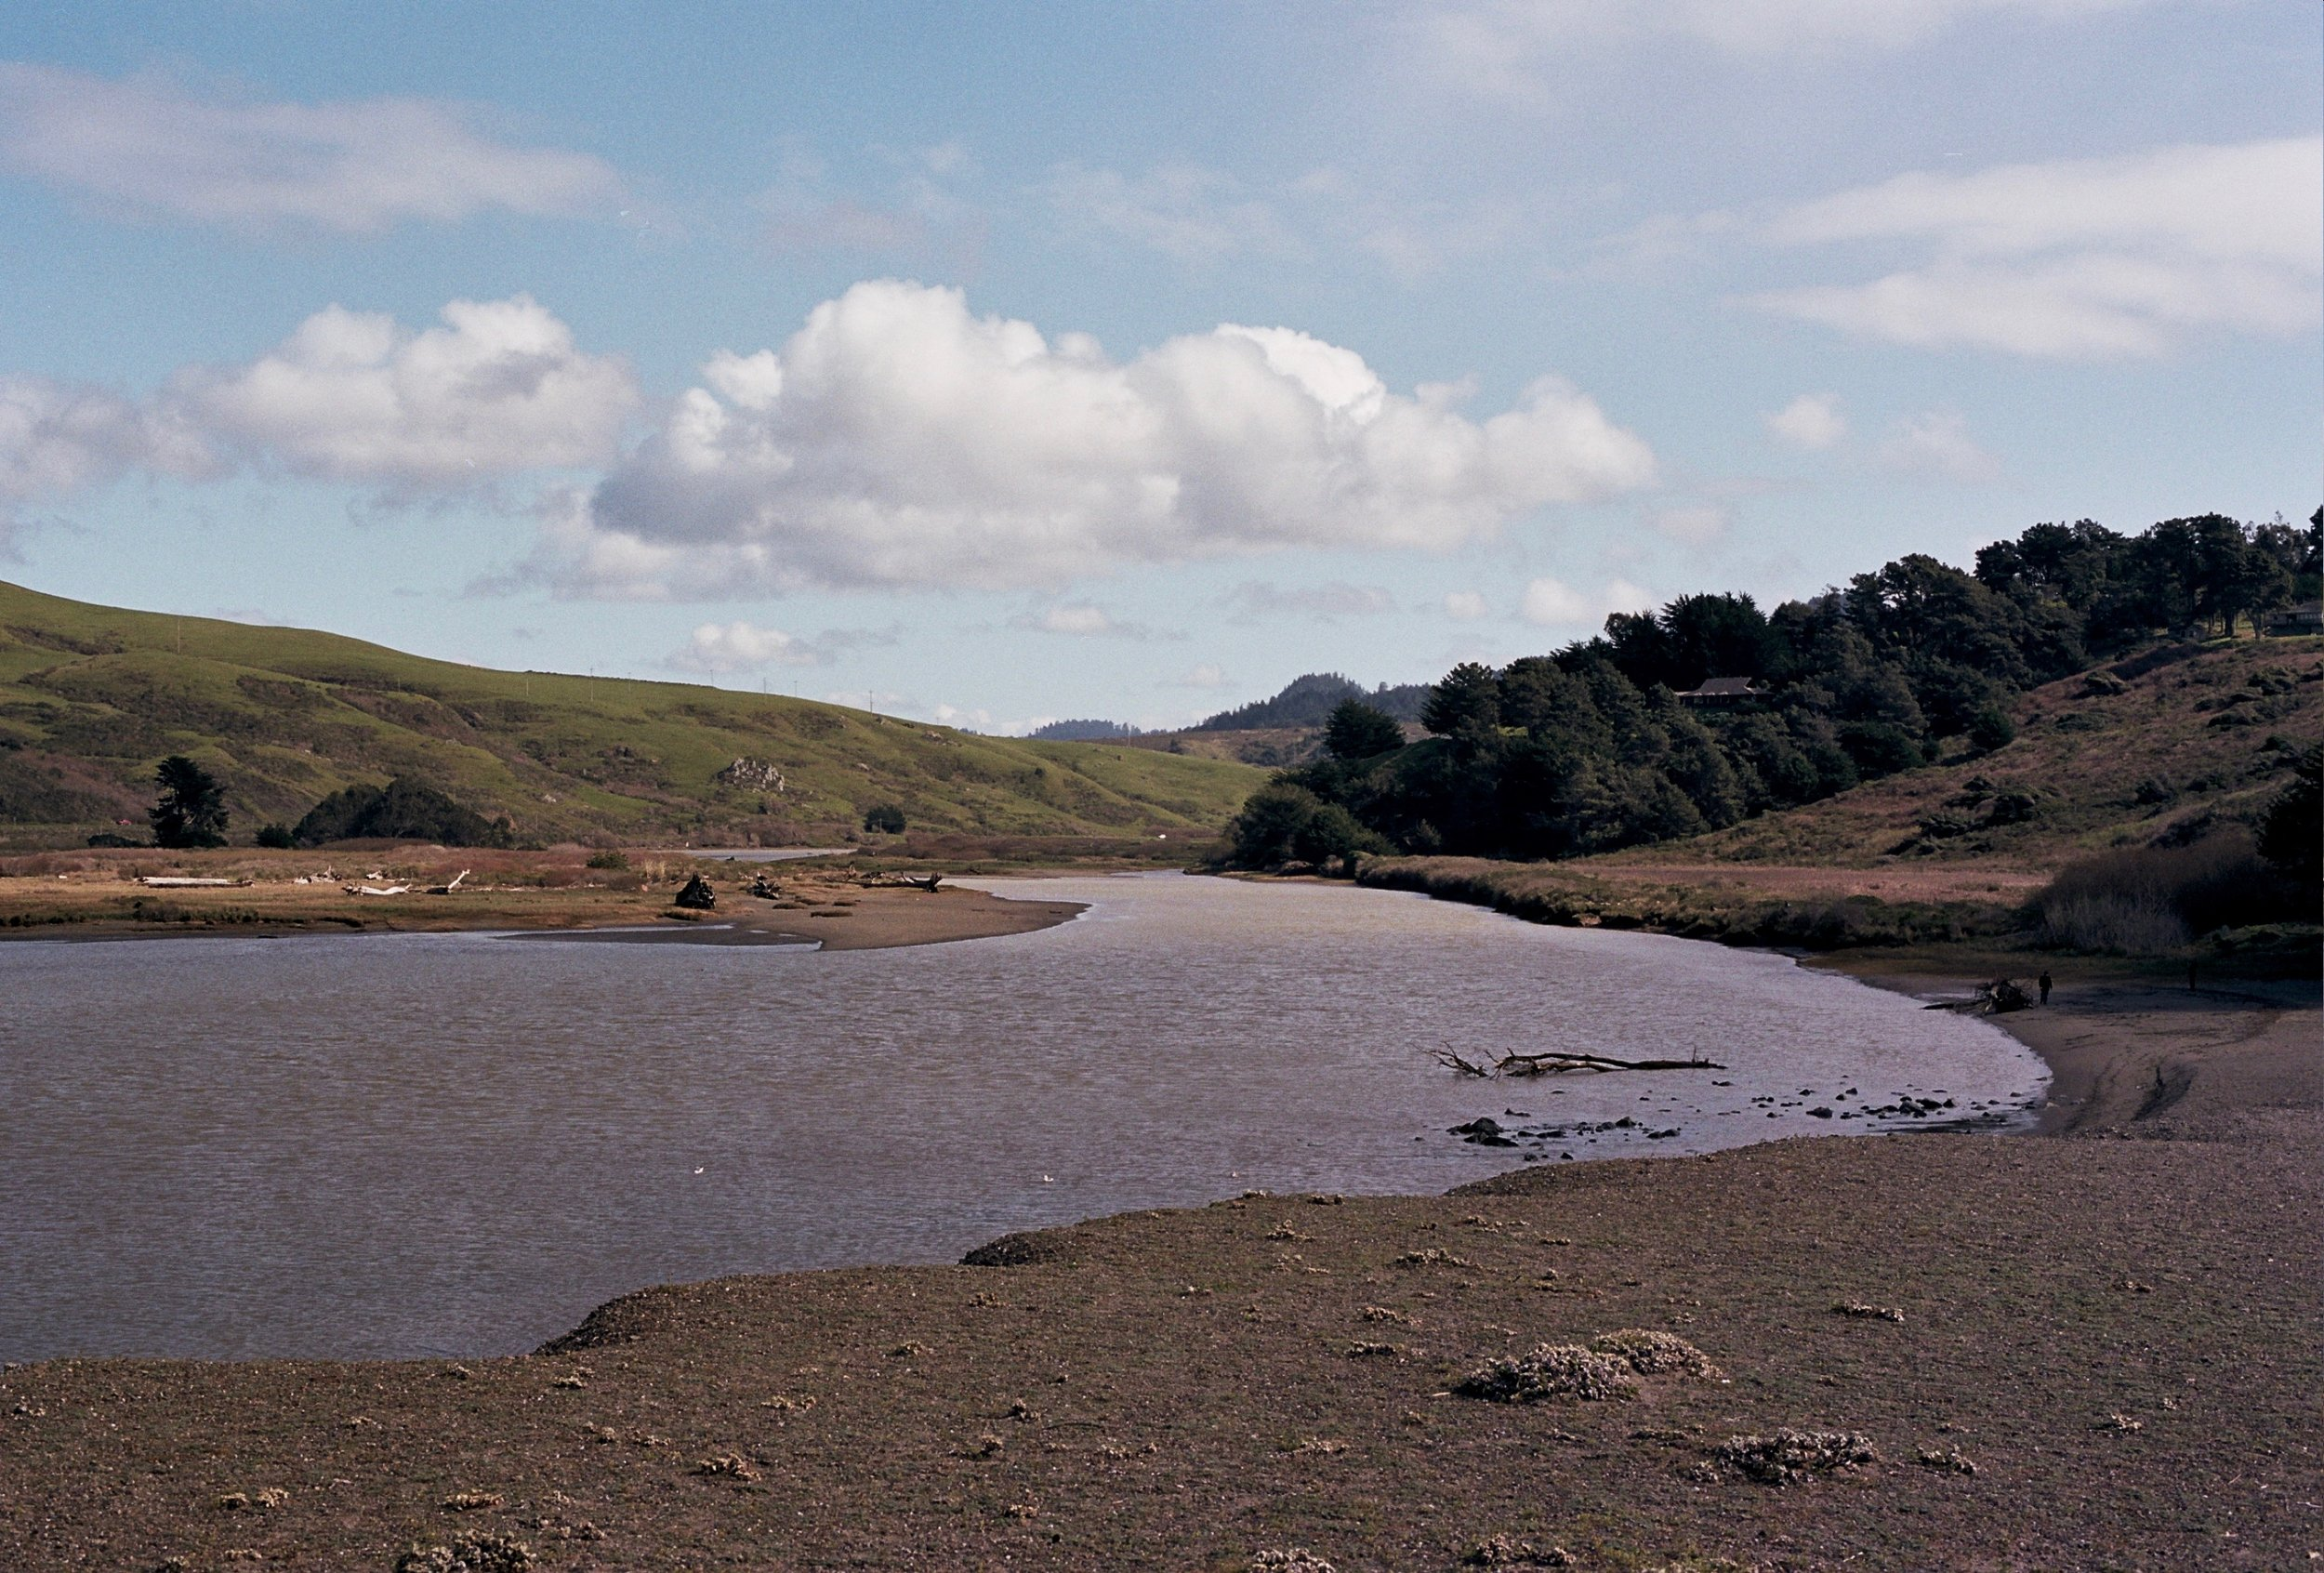 Russian River, Jenner, CA/Canon F-1n with 50mm Canon FD f/1.4